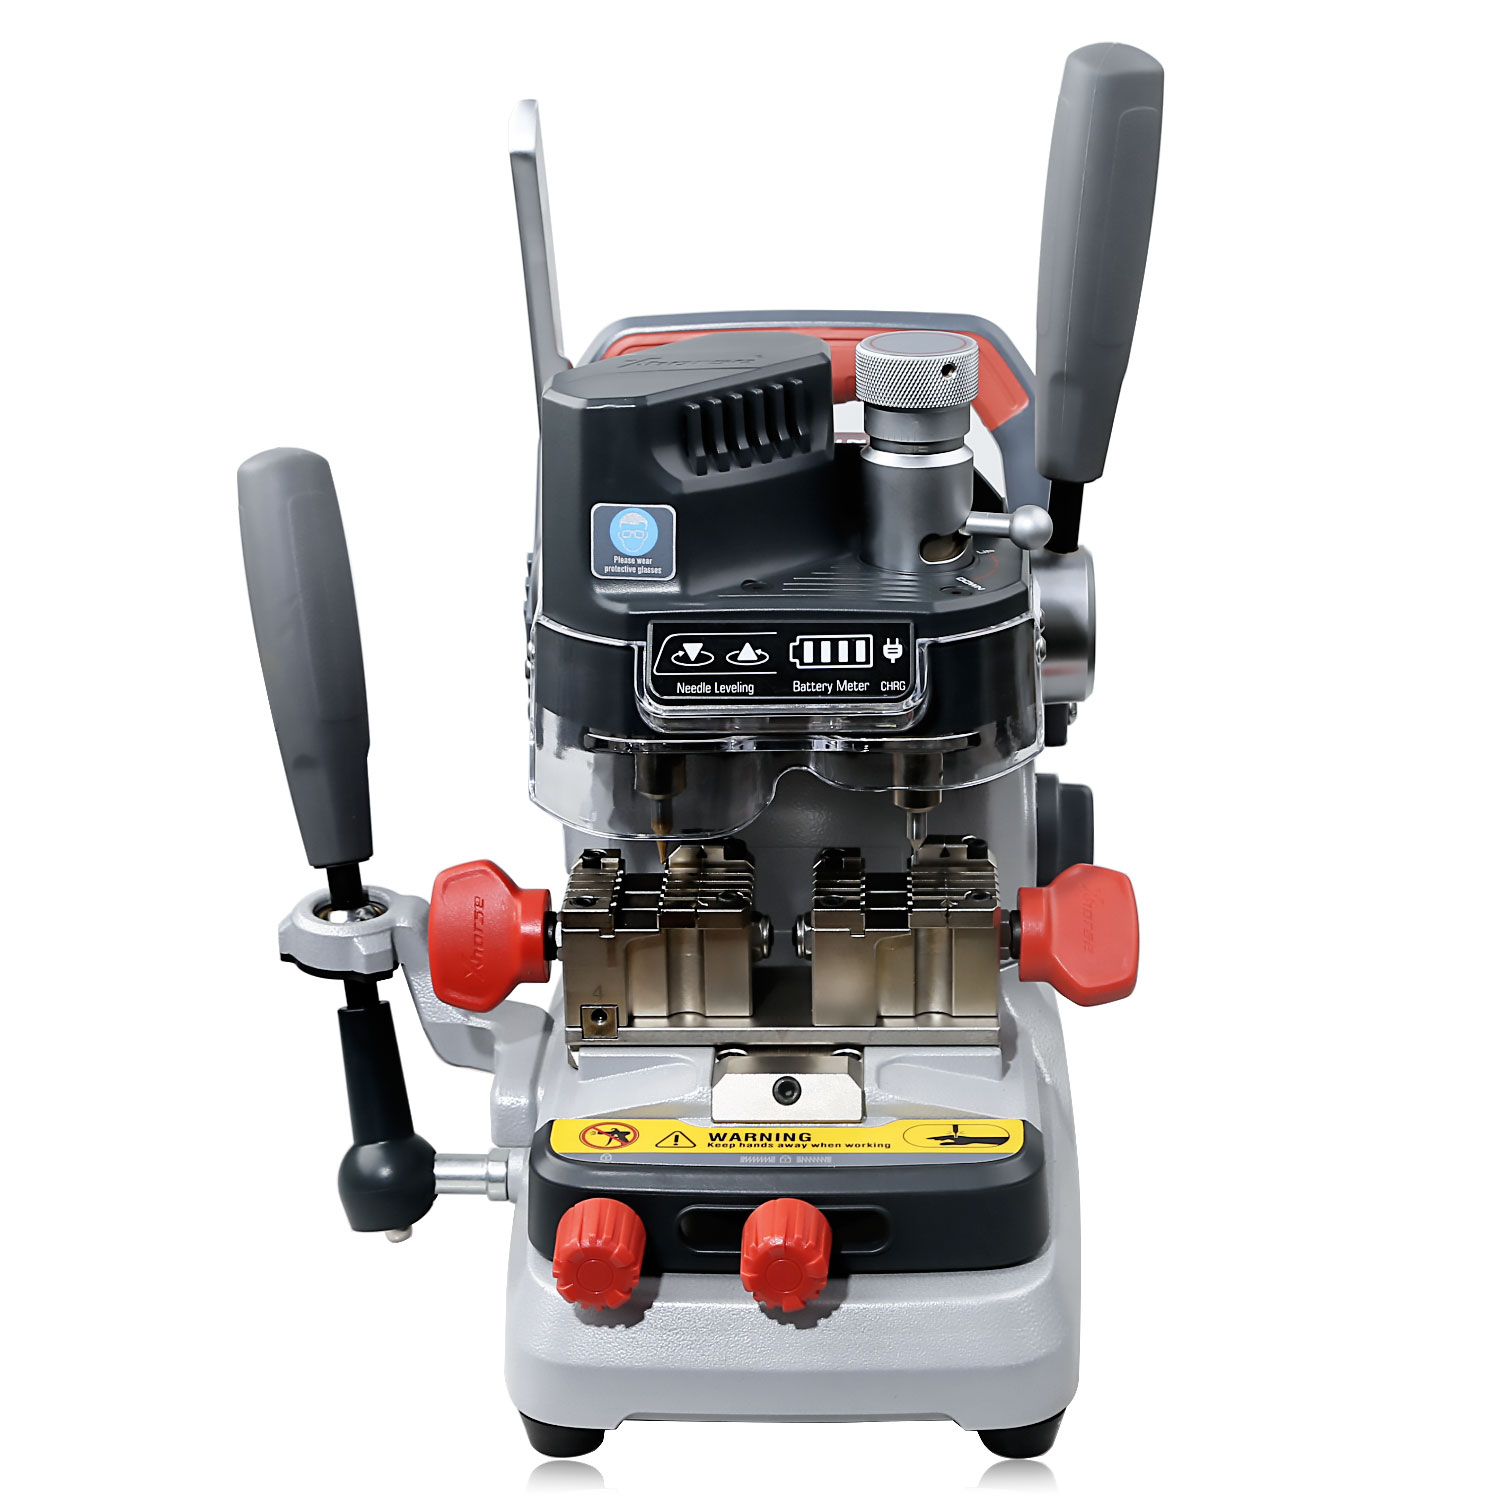 Xhorse DOLPHIN XP007 Manual Key Cutting Machine for Laser, Dimple and Flat Keys